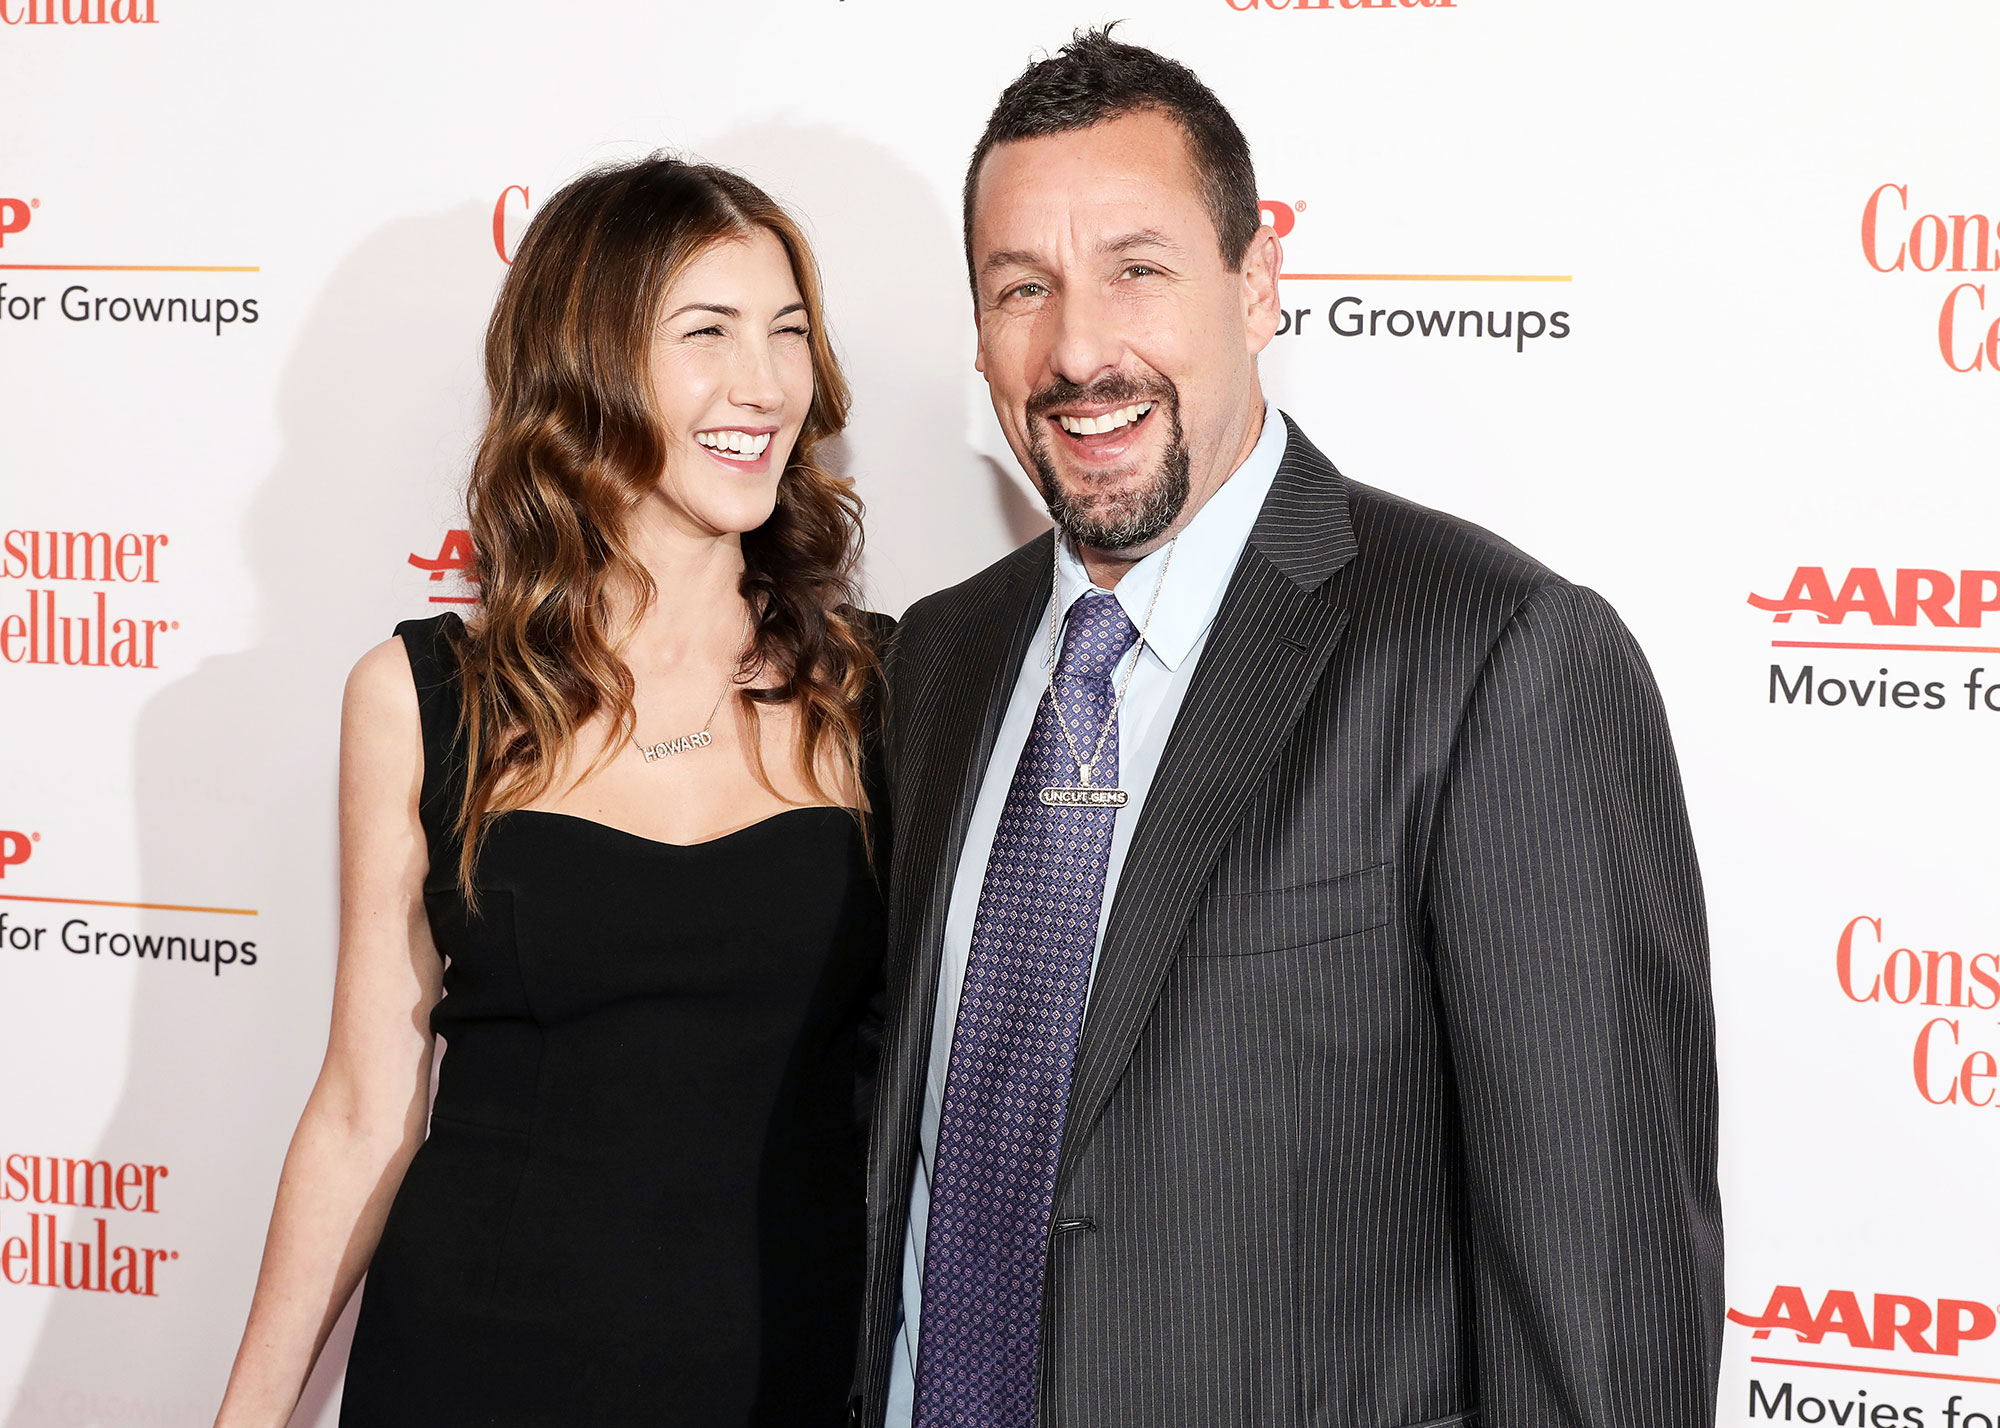 Jackie Sandler and Adam Sandler attend the AARP 19th Annual Movies For Grownups Awards Adam Sandler Talks Jennifer Aniston Friendship and Murder Mystery Sequel